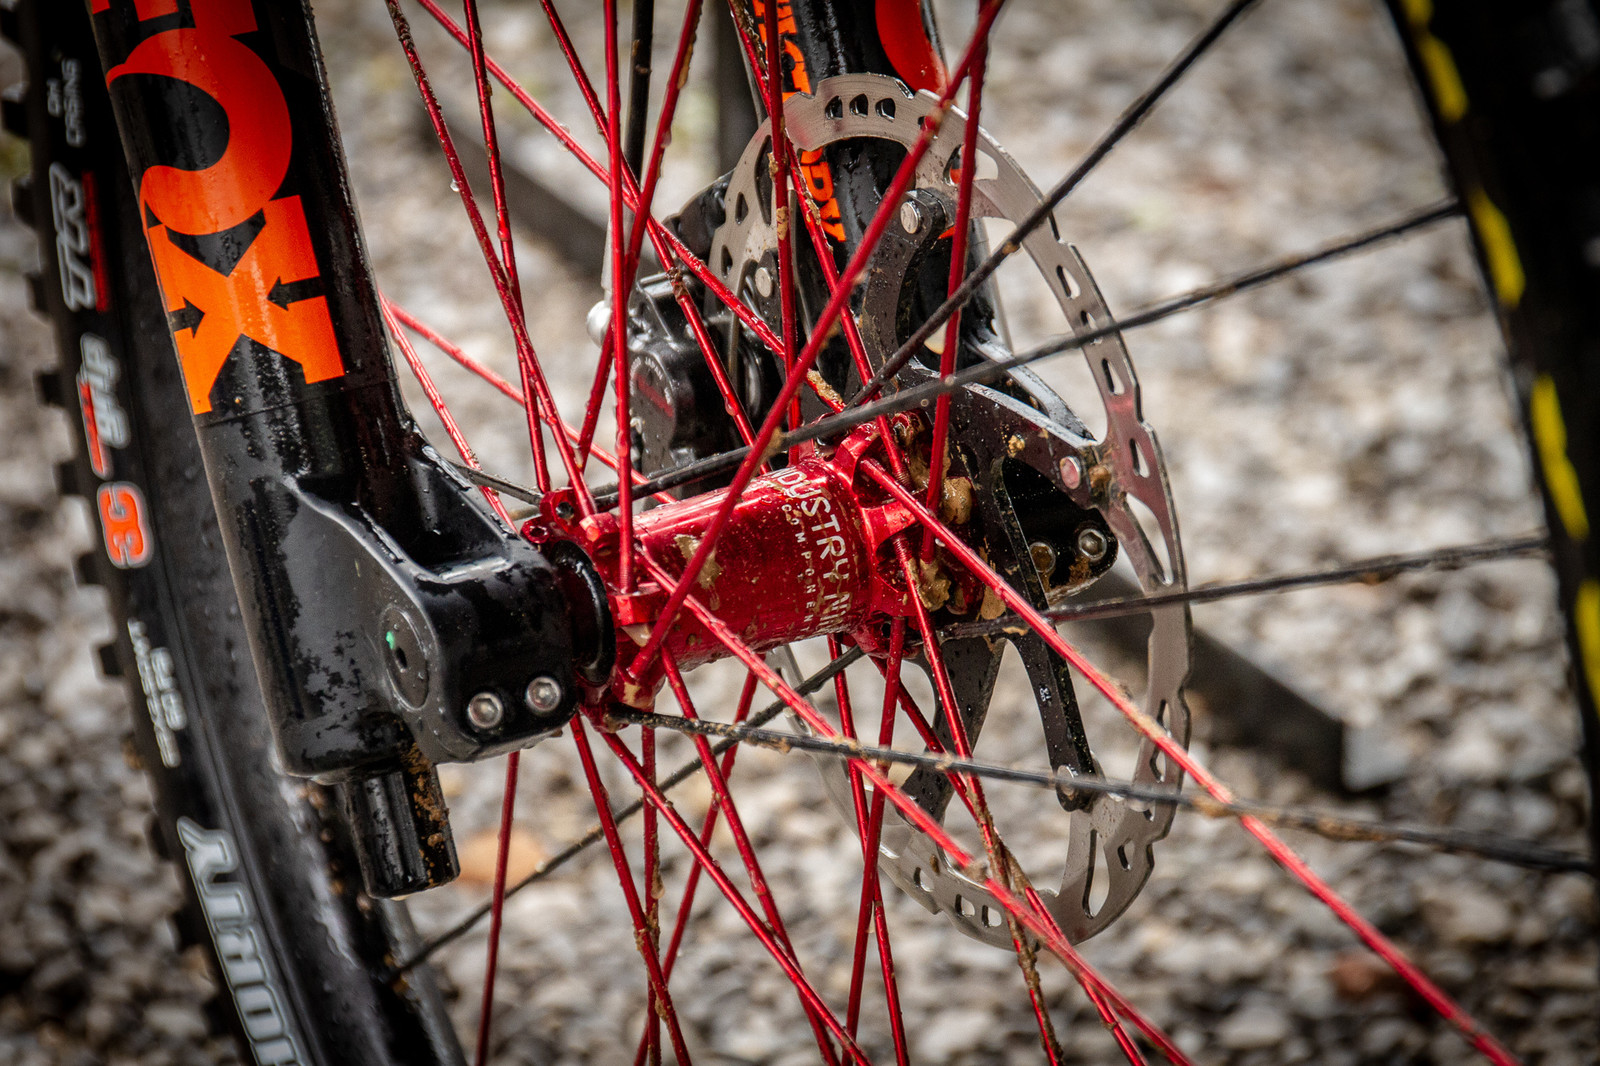 Steve Estabrook, Industry Nine Goodness on his Intense M29 - PIT BITS - 2019 Windrock Tennessee National Pro GRT  - Mountain Biking Pictures - Vital MTB